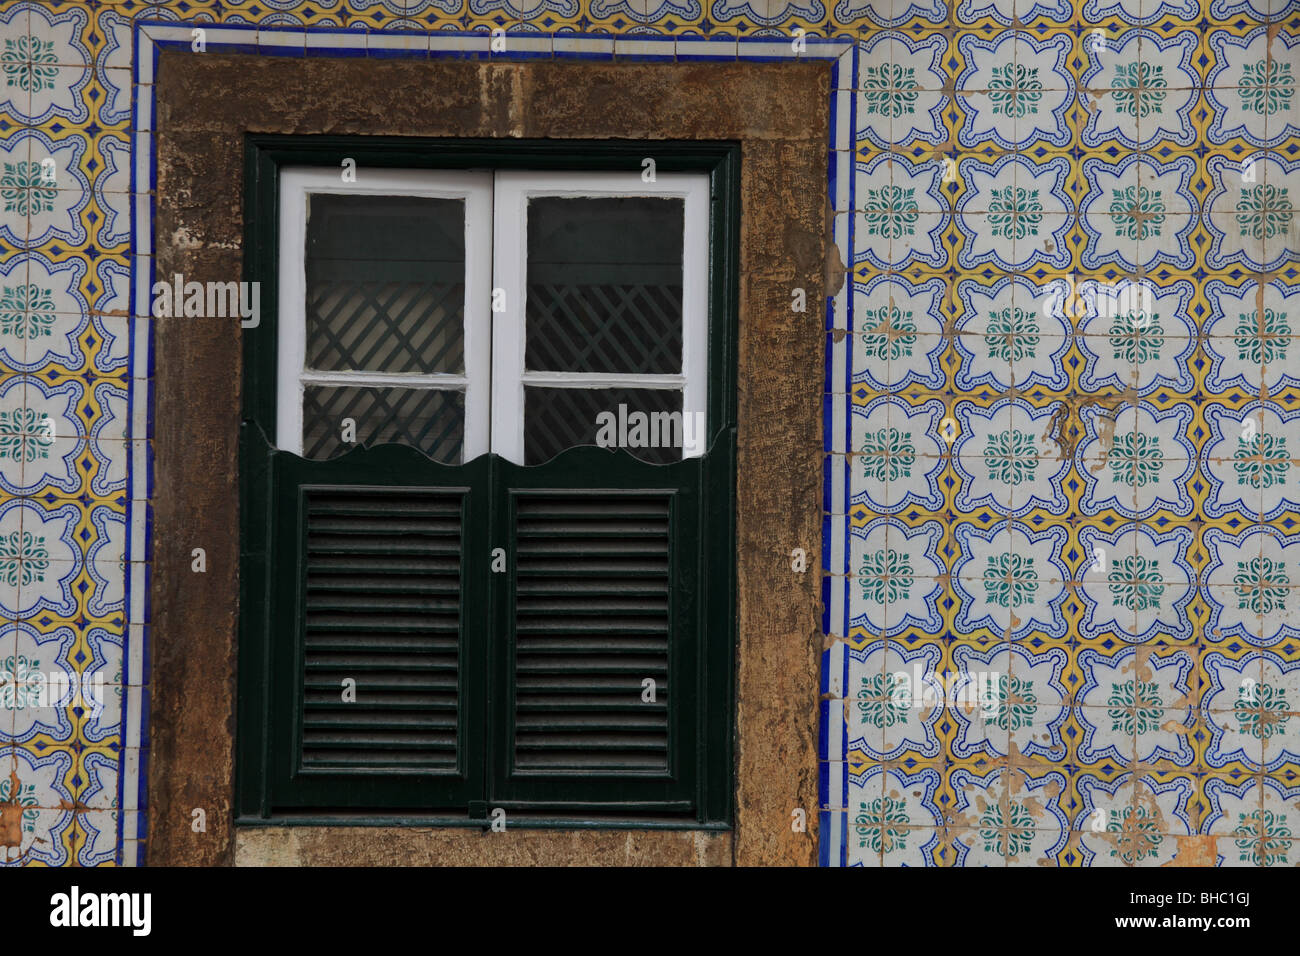 Traditional Lisbon housing with Azulejos tiles - Stock Image